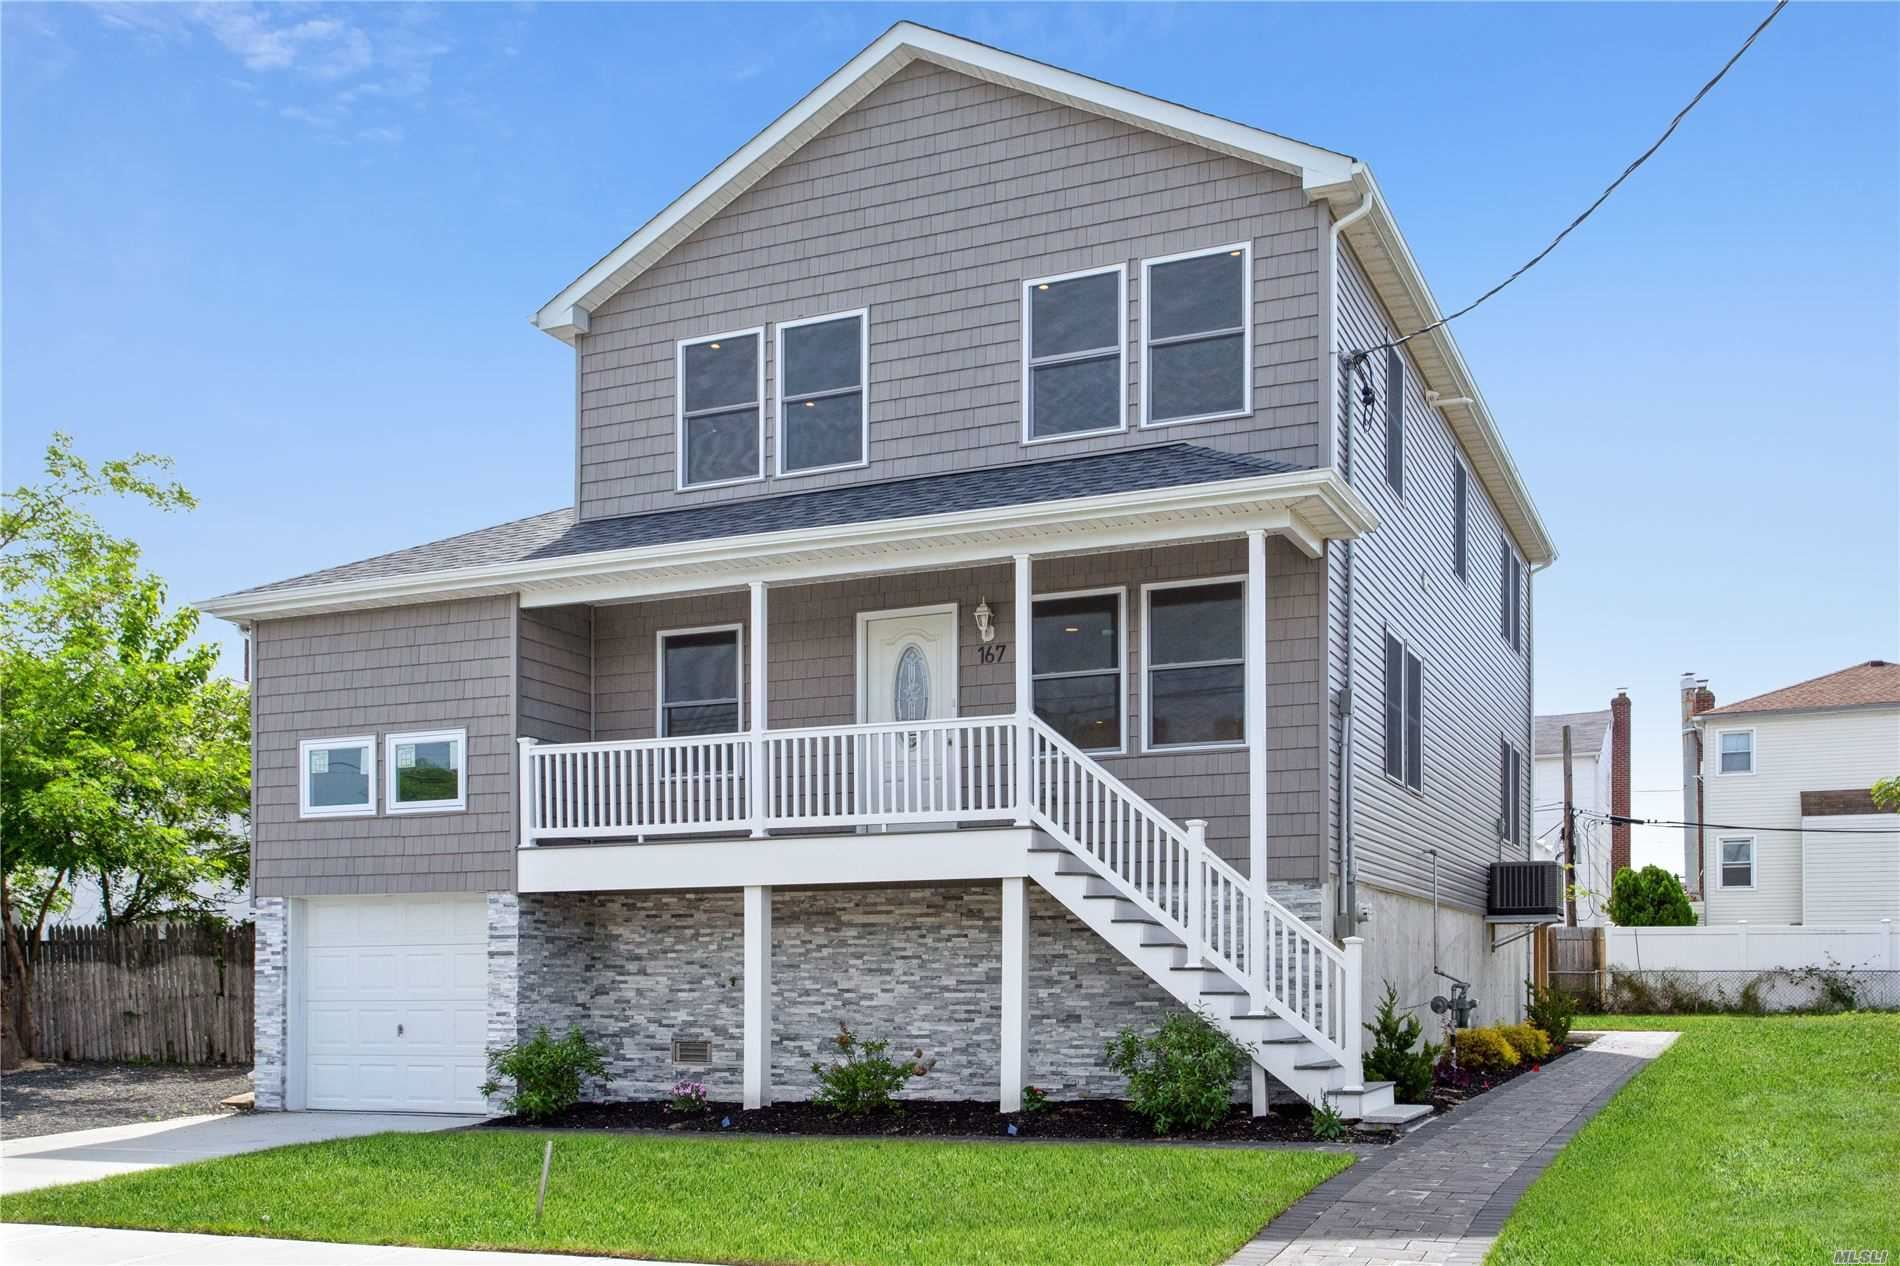 167A Waterford Road, Island Park, NY 11558 - MLS#: 3219024